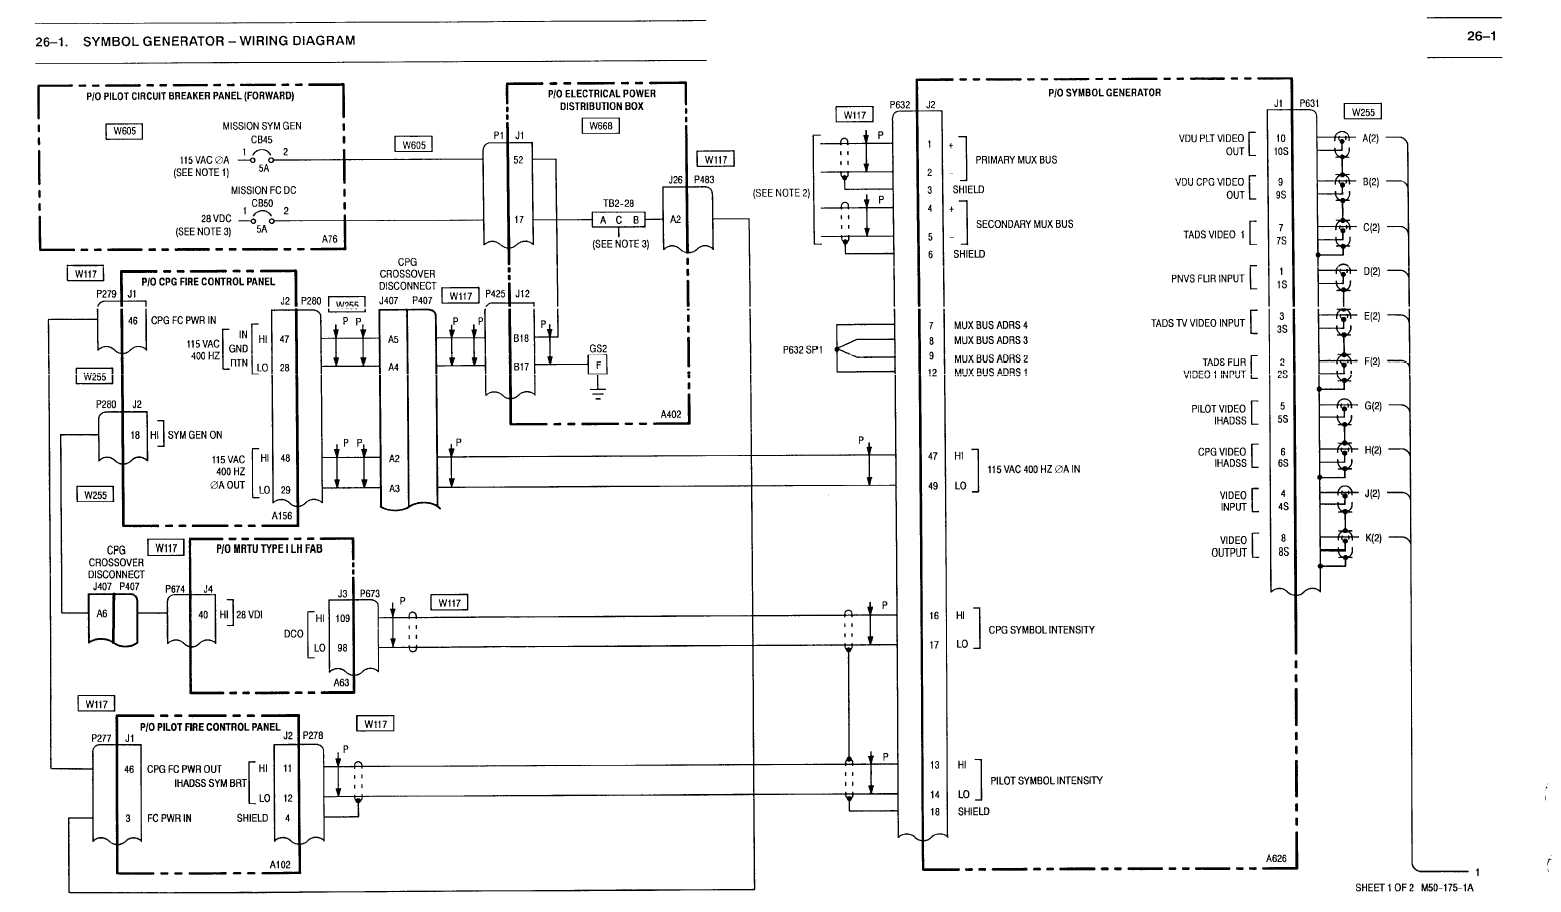 Aircraft Symbol Generator The Best And Latest 2018 Wiring Diagrams For Generators Electronic Flight Instrument System Efis